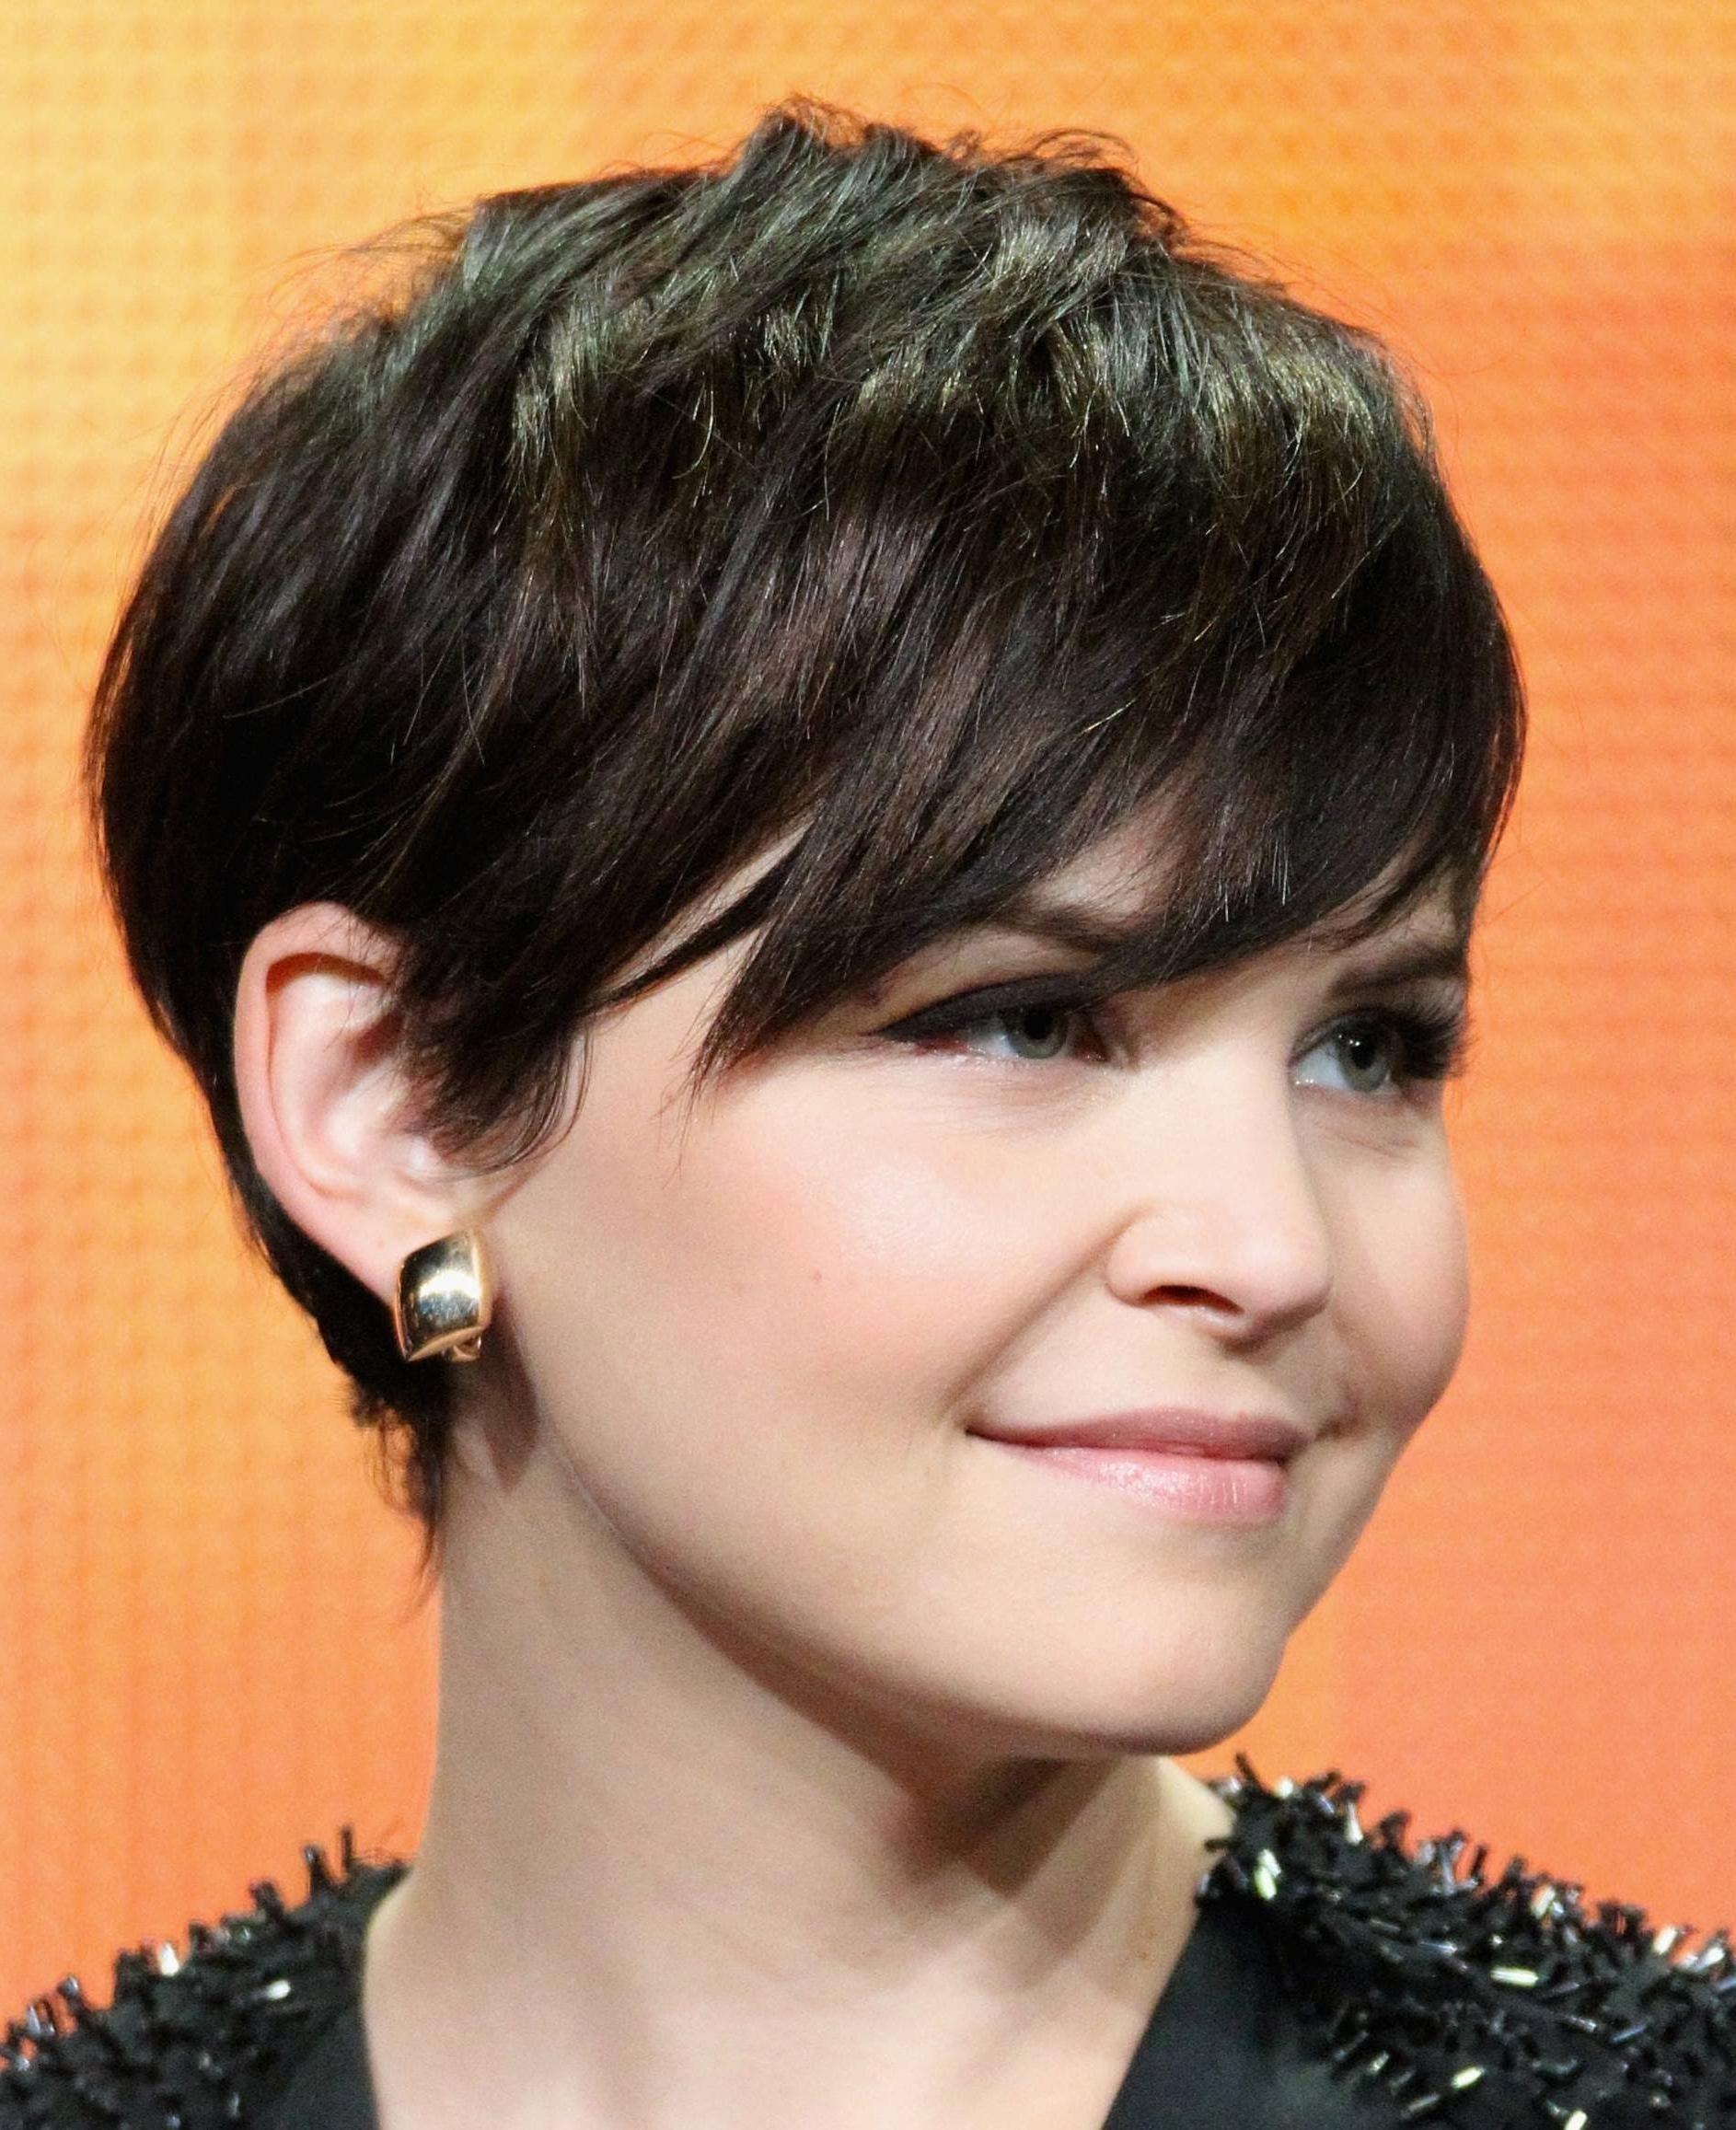 Ginnifer Goodwin Pixie Haircut Tutorial | The Salon Guy – Youtube Inside Most Current Very Short Textured Pixie Hairstyles (Gallery 7 of 15)